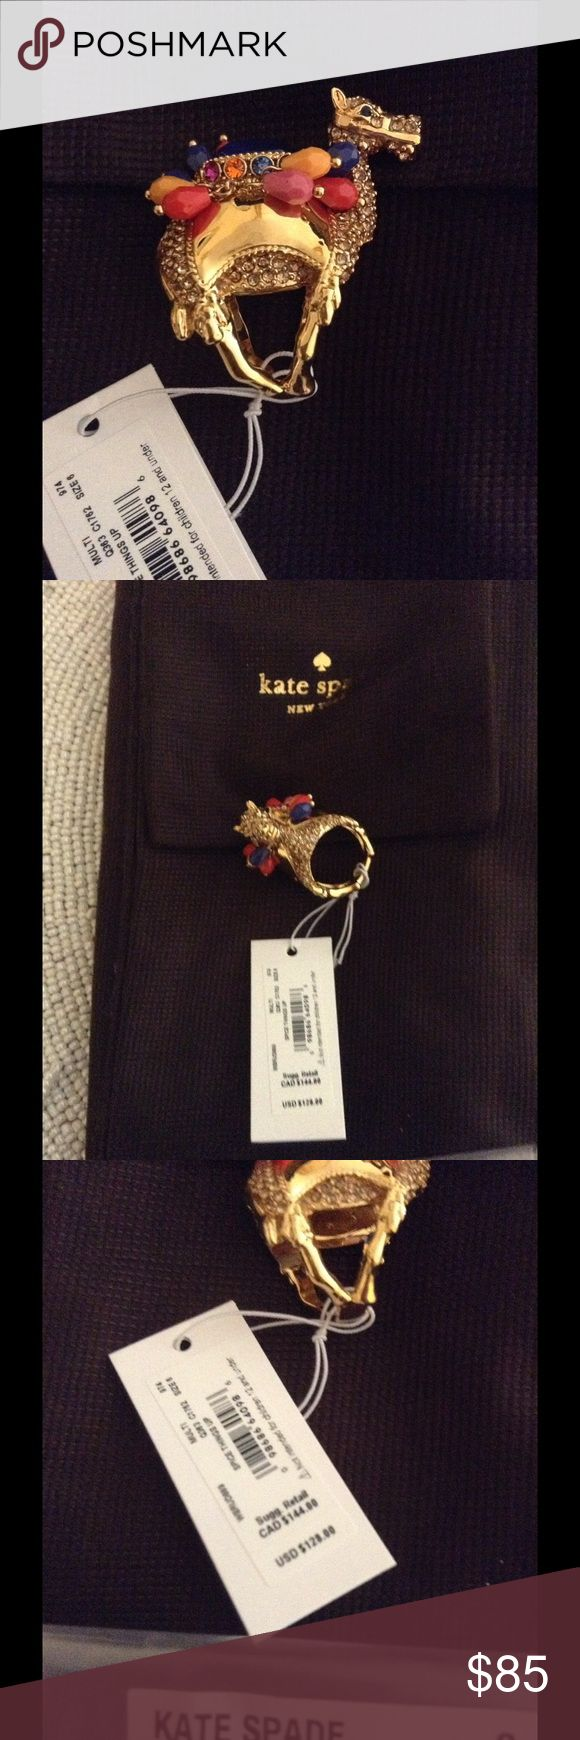 Kate Spade Camel Spice Things Up ring size 6 Brand new in original factory packaging ring in a size 6 from Kate Spade. It is guaranteed authentic with all original tags retailing for $128. Smoke free home comes with everything shown and in a gift box. kate spade Jewelry Rings